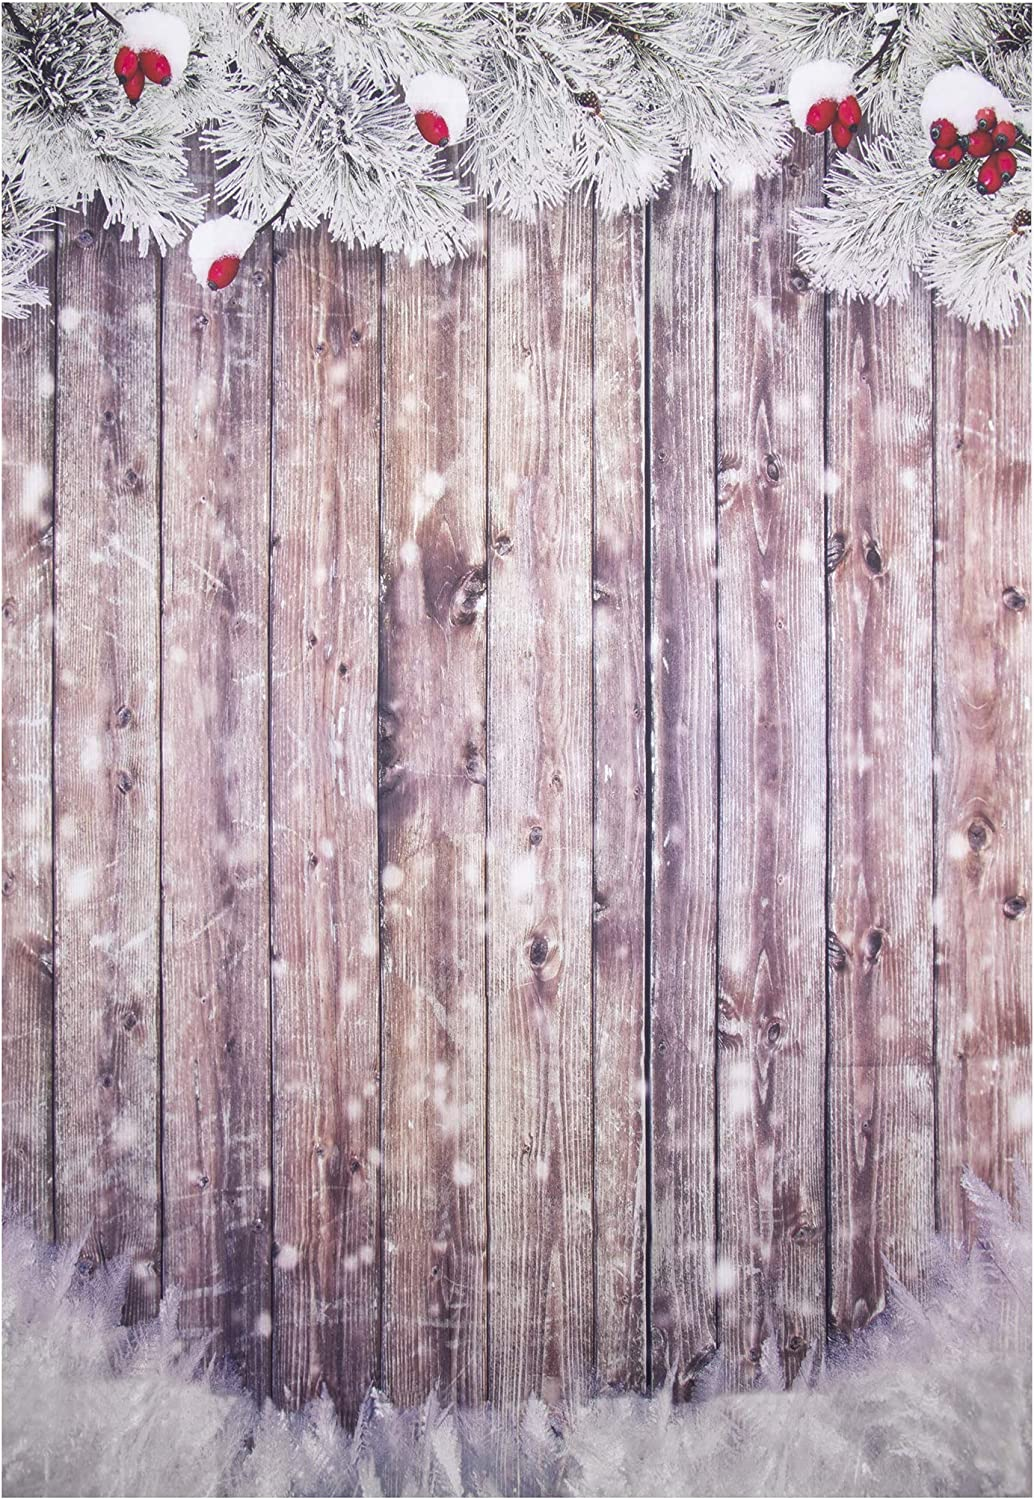 7/×5ft Photography Backdrops Vinyl Christmas Snow Easy to Carry Photo Backdrop Wall Decorations Event Parties Birthday Parties Creative Background Wall Drop for Children or Adult